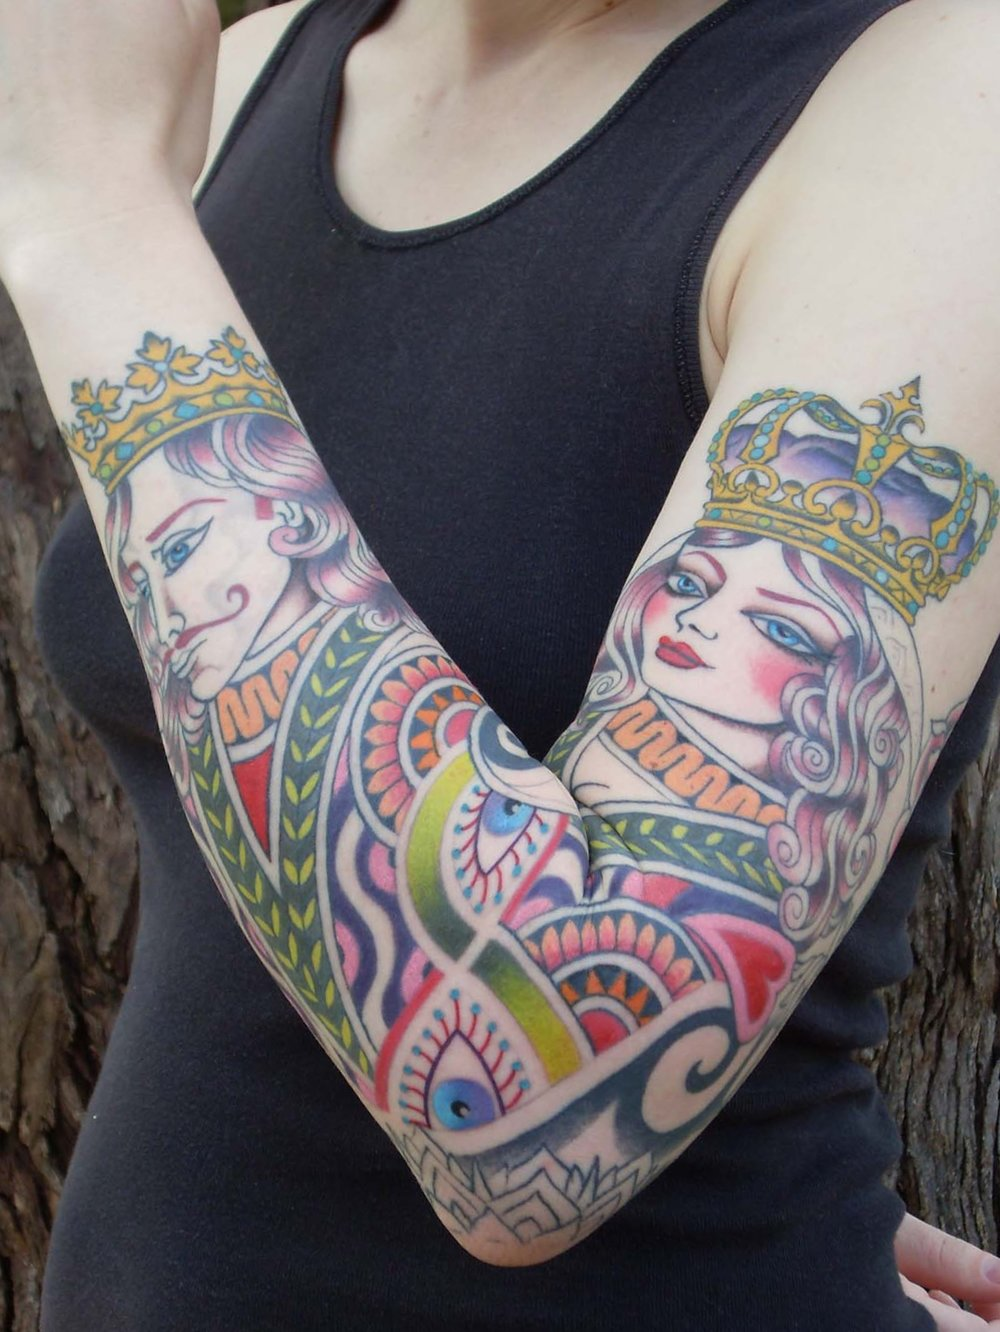 queen-tattoo-megan-oliver.jpg